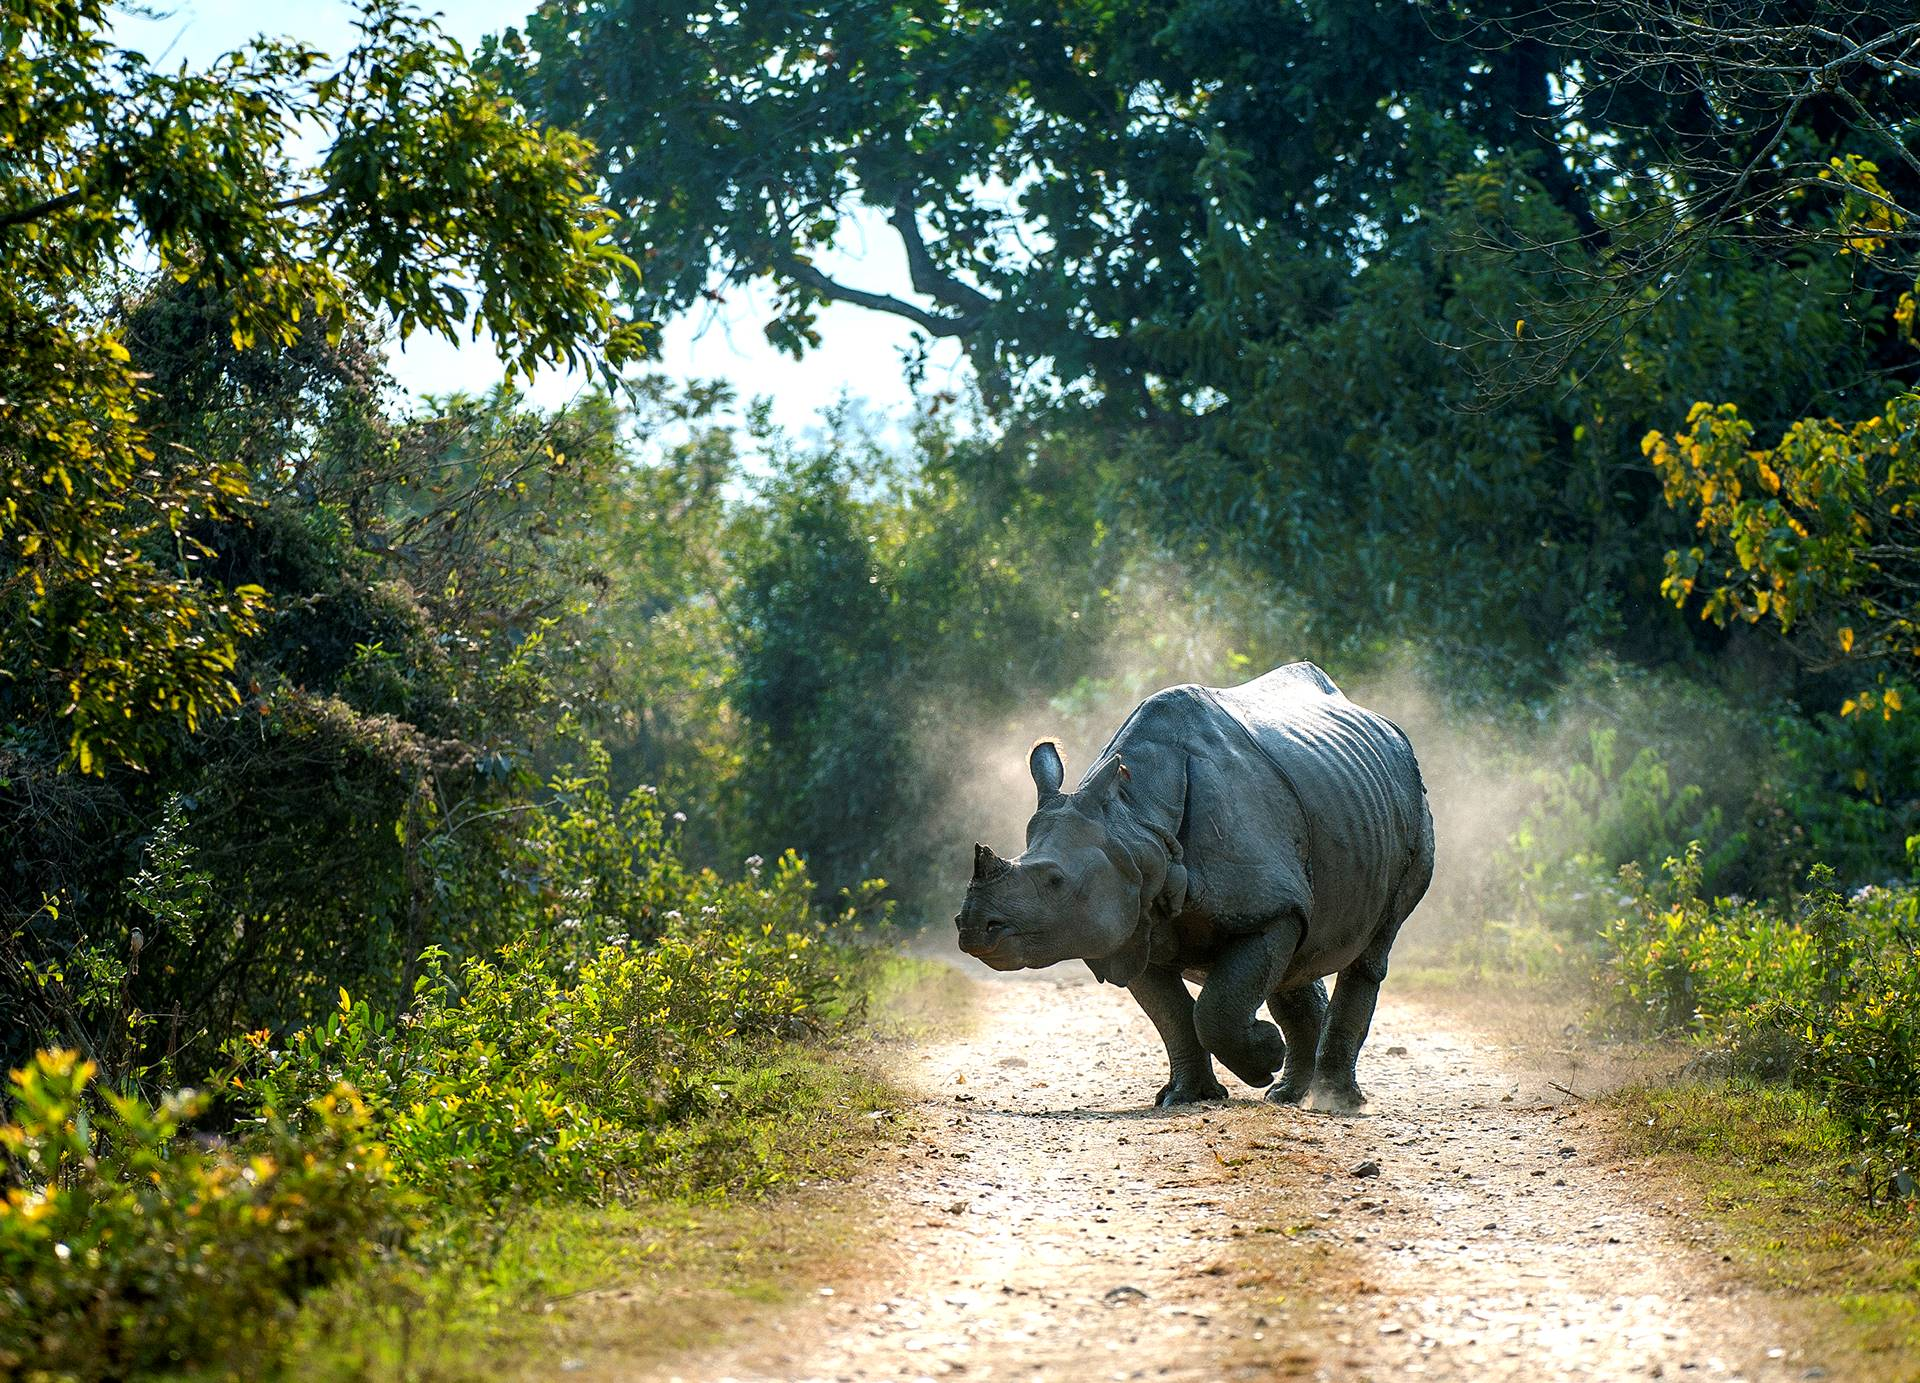 The greater one-horned rhino is a creature of habit. It walks the same paths, marking territory with its urine and dung. Unfortunately, its predictability also makes it an easy target for poachers.  